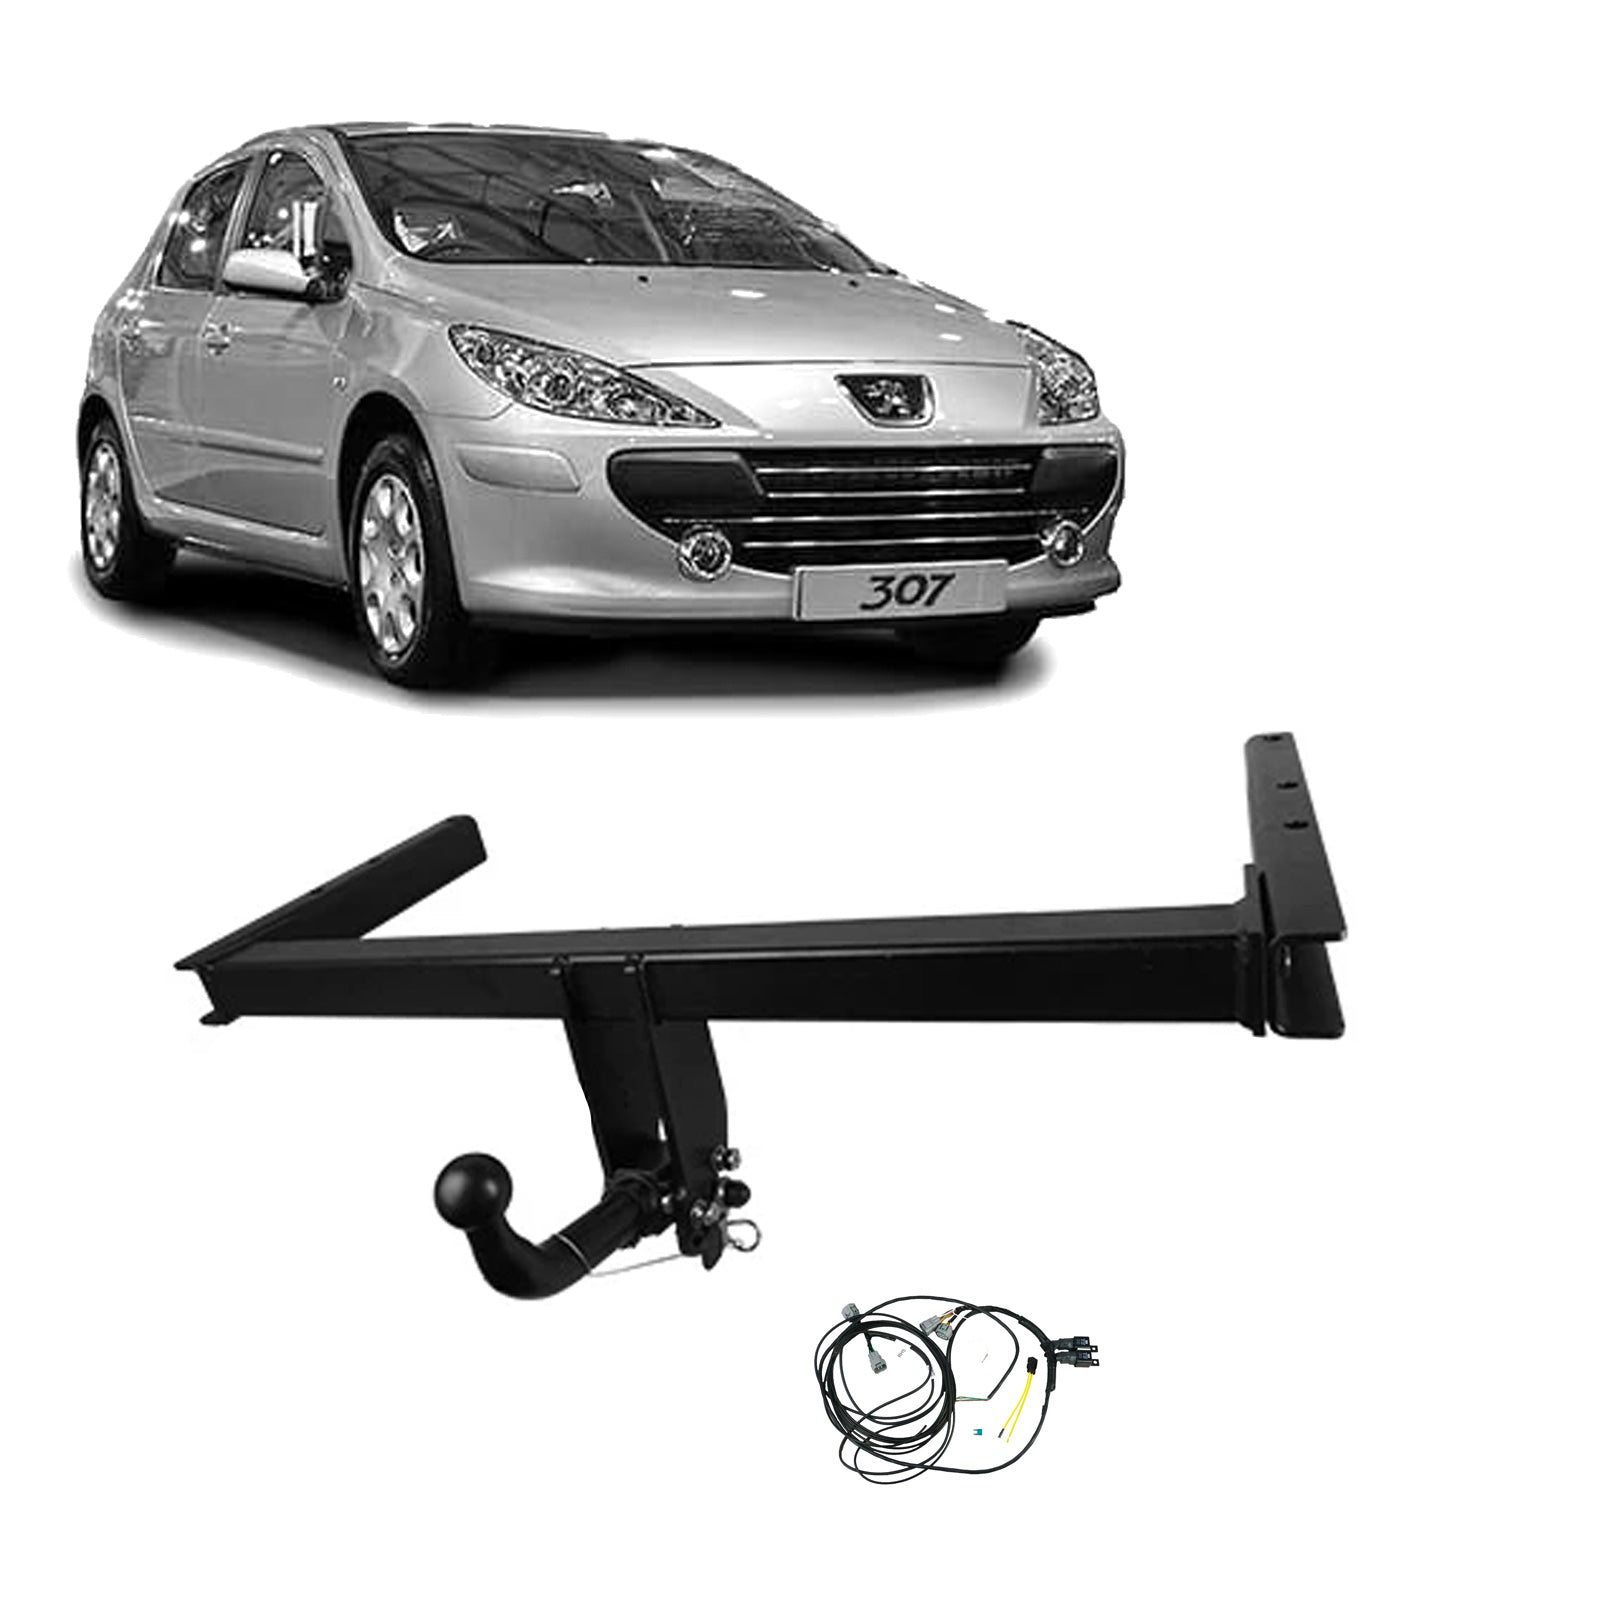 TAG Towbars European Style Tongue to suit Peugeot 307 (08/2000 - 06/2008), 308 (09/2007 - 07/2011)